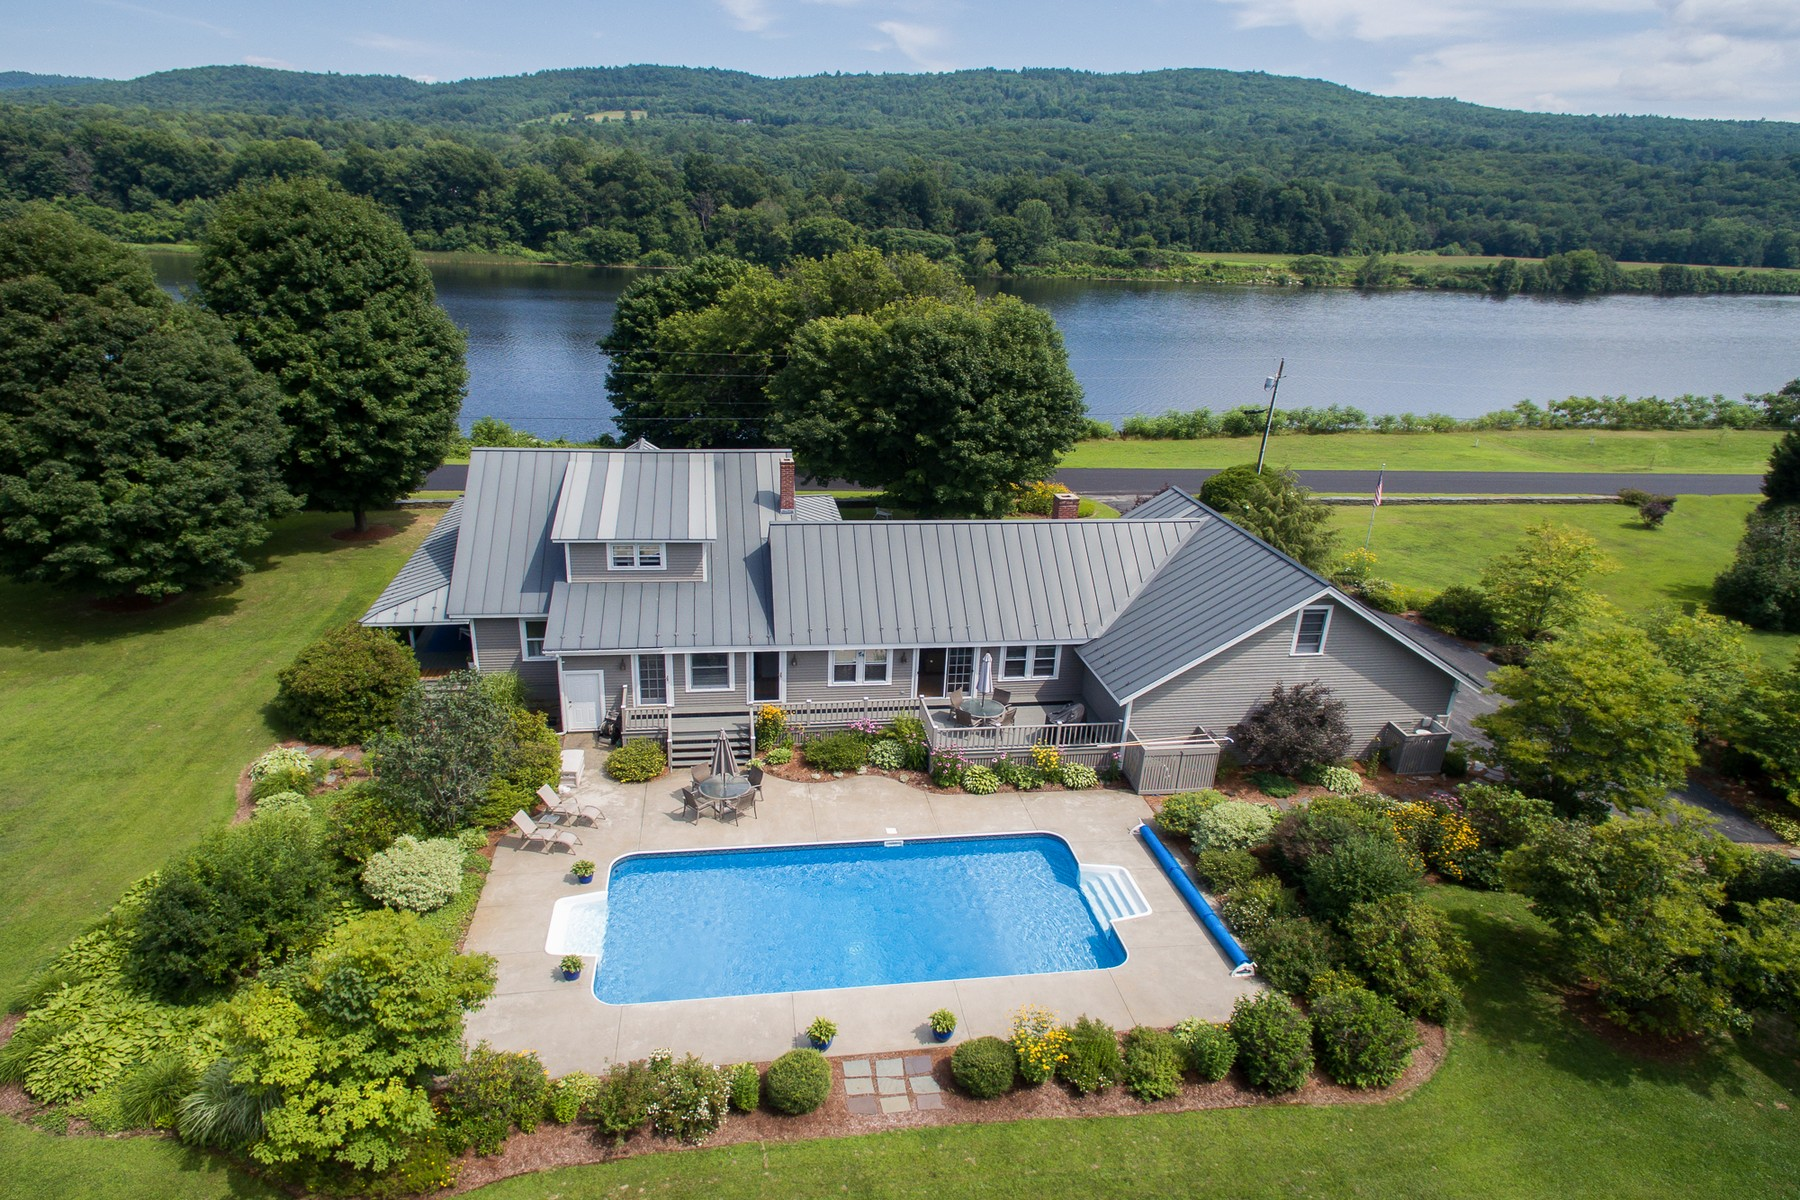 Maison unifamiliale pour l Vente à Mountain and River Views! 668 Old Connecticut River Road Rd Springfield, Vermont, 05156 États-Unis